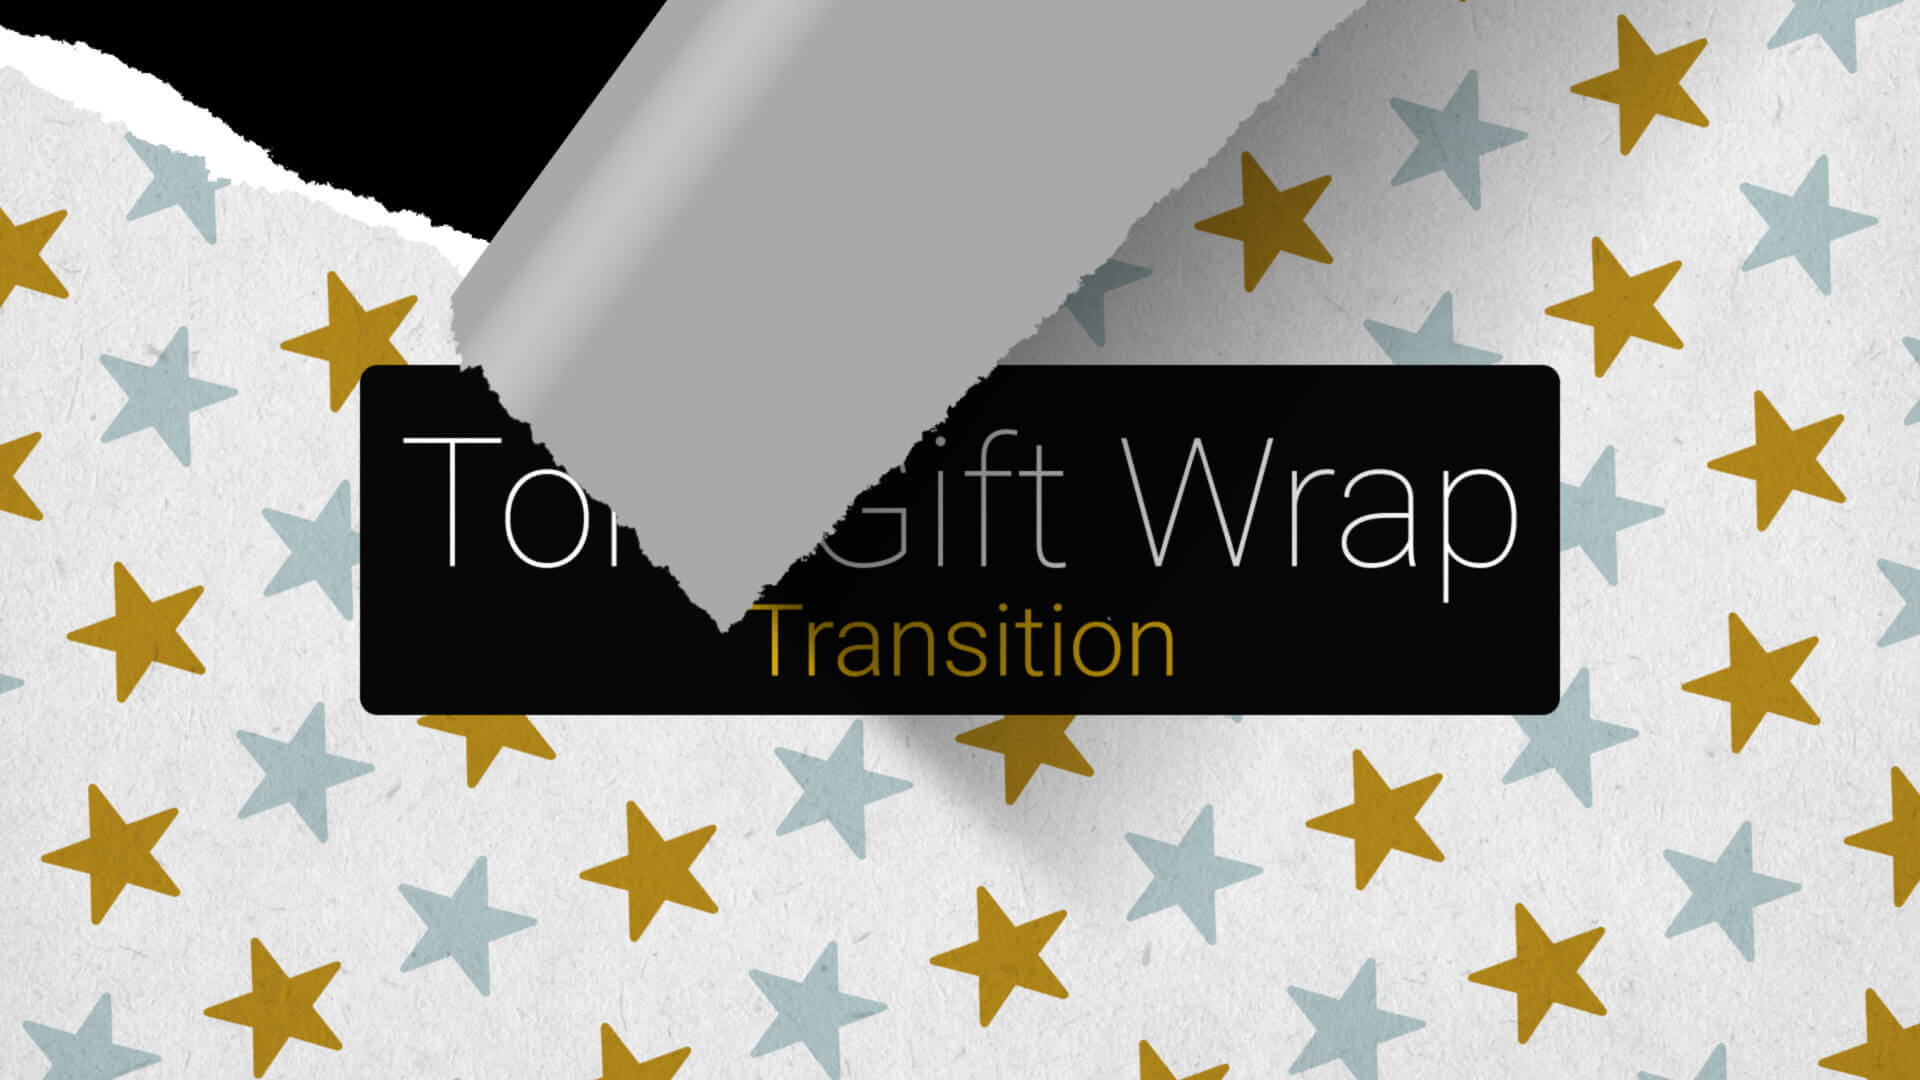 Torn Gift Wrap Paper Transition Premier Pro MOGRT Template